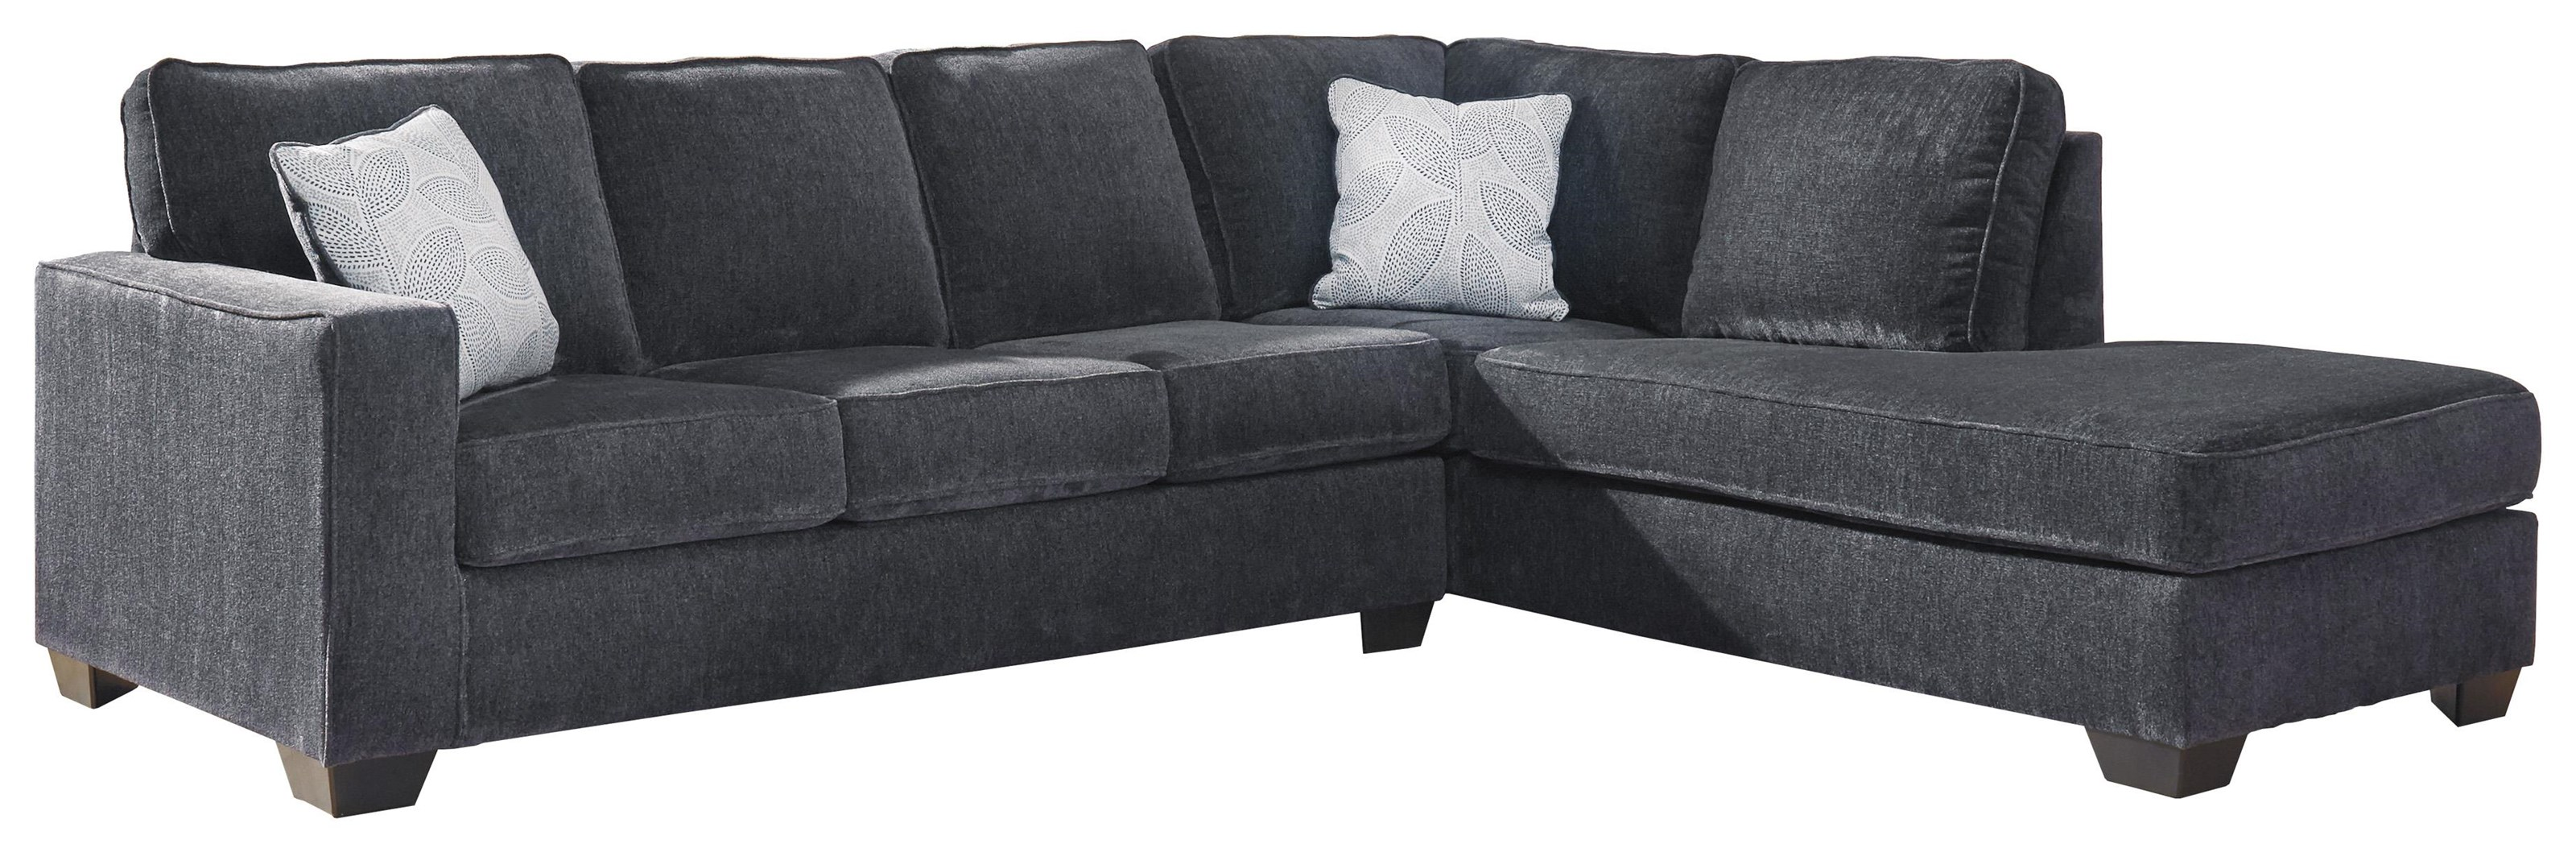 Altari 2 PC Sectional, hair and Ottoman Set by Signature Design by Ashley at Sam Levitz Outlet